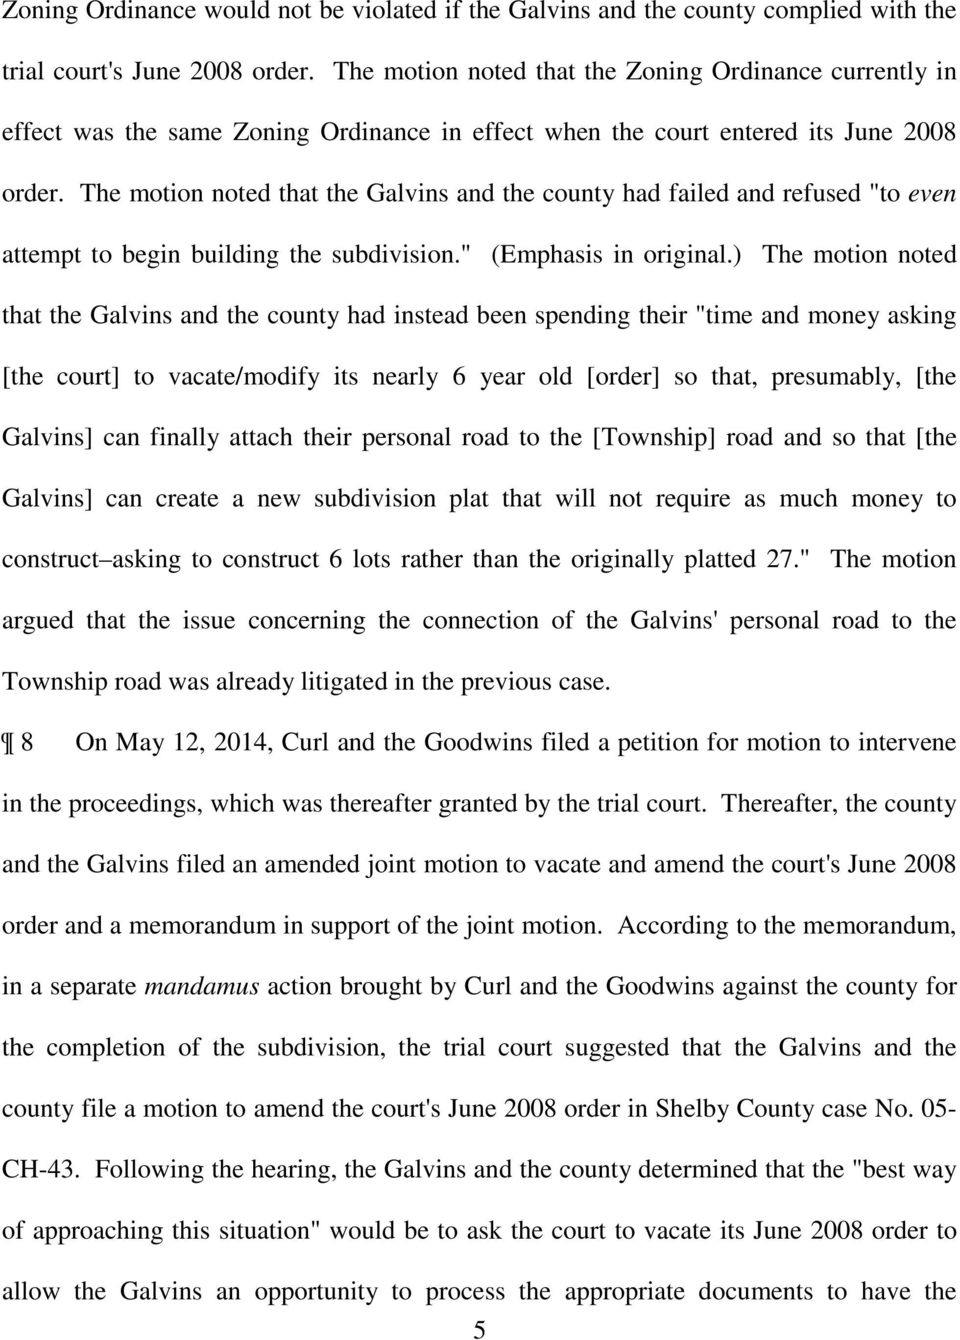 "The motion noted that the Galvins and the county had failed and refused ""to even attempt to begin building the subdivision."" (Emphasis in original."